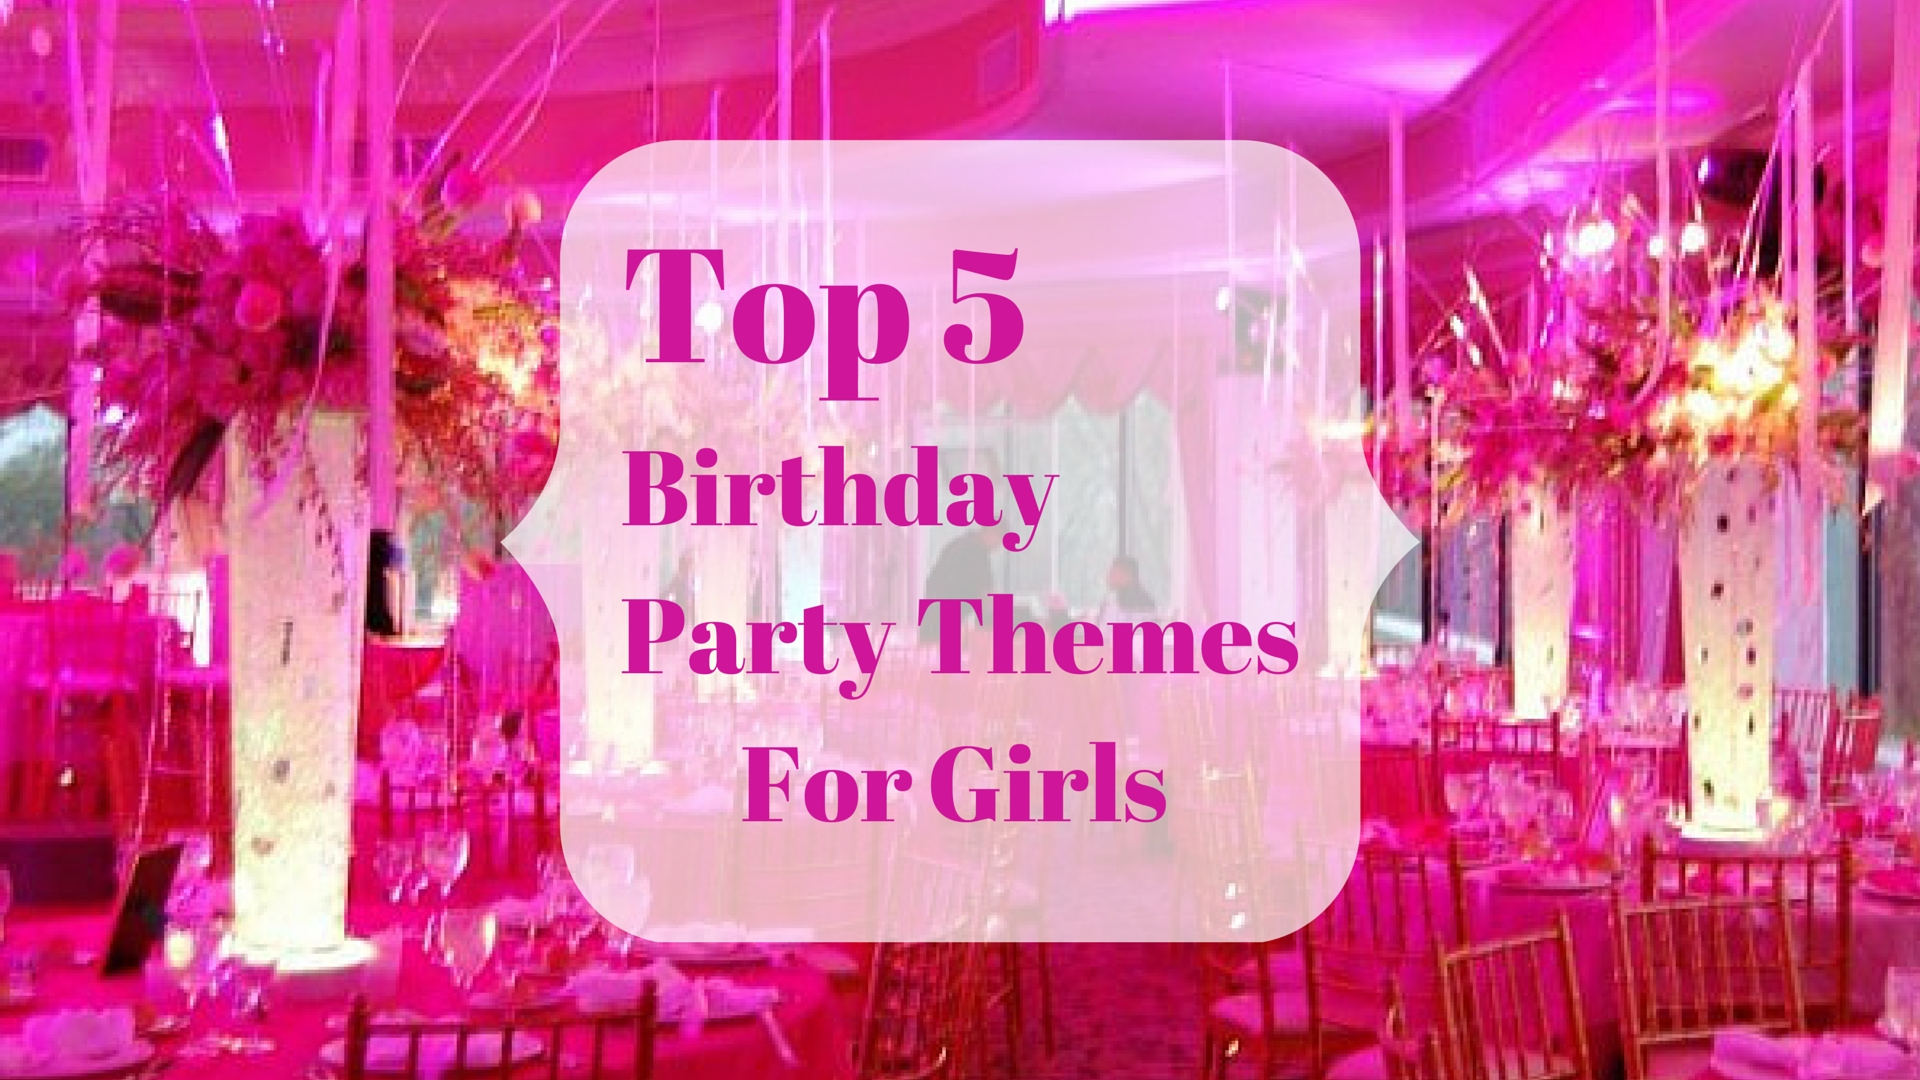 10 Nice Birthday Party Ideas For A 10 Year Old Girl top 5 birthday party themes for girls 4 2020